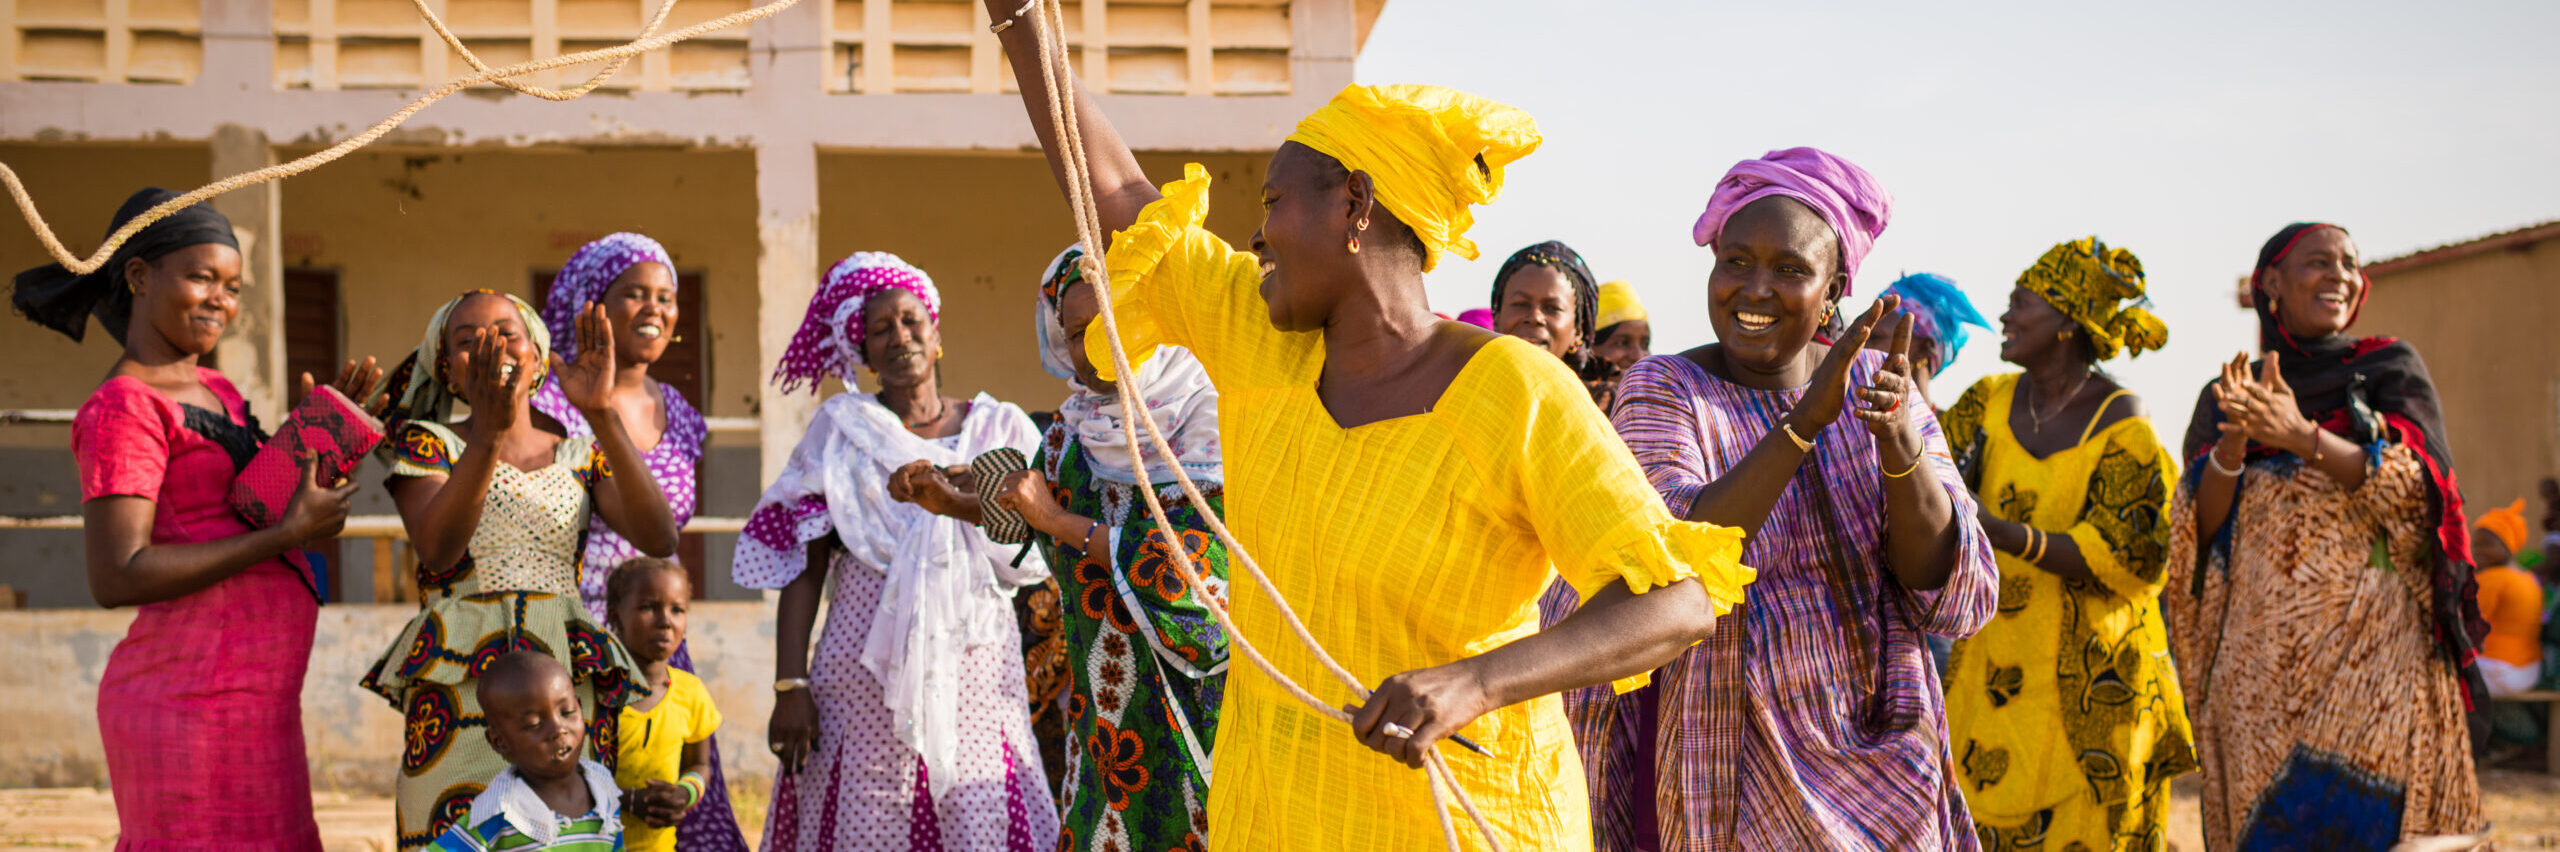 """Ms. Khady Ndongo (in purple) is a community nutrition volunteer in the Matam region of Senegal. Here she has organized a """"Passing on the Gift"""" ceremony between women in her village and those in a village 7 kilometers away and has presented two goats to a member of a Debbo Galle (competent mothers) Group. Through this process, families that receive livestock through the Feed the Future Senegal Yaajeende project, implemented by a consortium led by NCBA CLUSA, pass on offspring to other targeted families in their community. This allows recipients of a productive asset to assist others as they have been helped and to share resources, thereby encouraging resilience across the community. *Passing on the Gift is a trademark of Heifer International, a Feed the Future Yaajeende consortium partner. Photo by Clement Tardif, Feed the Future Senegal - Yaajeende"""